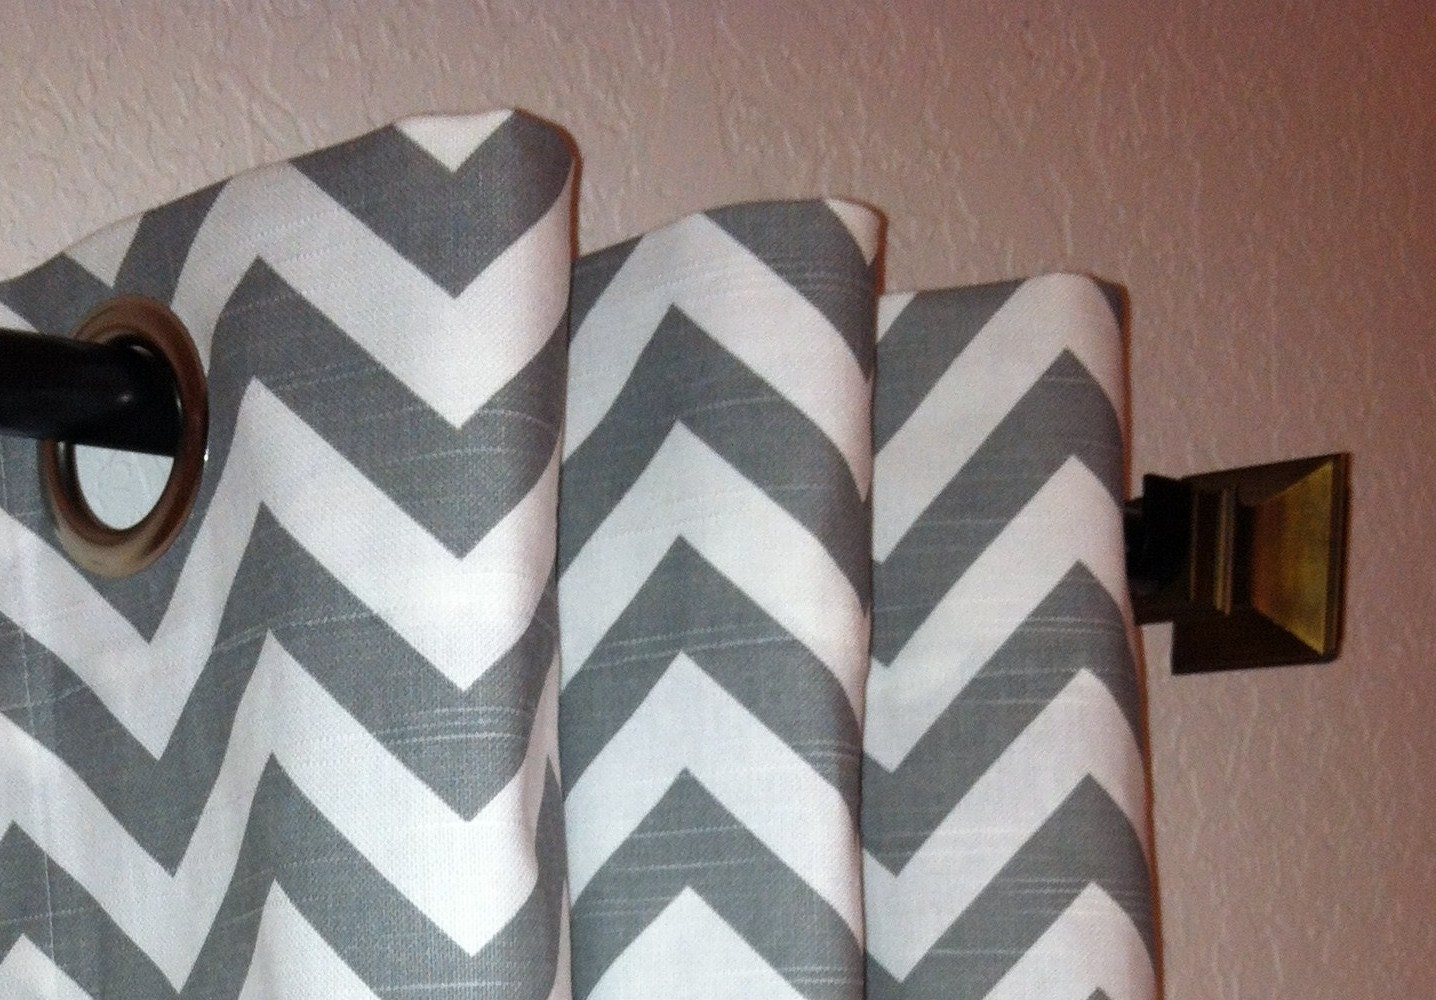 Pair Of Grommet Top Curtains In Ash Grey And White By Sewpanache